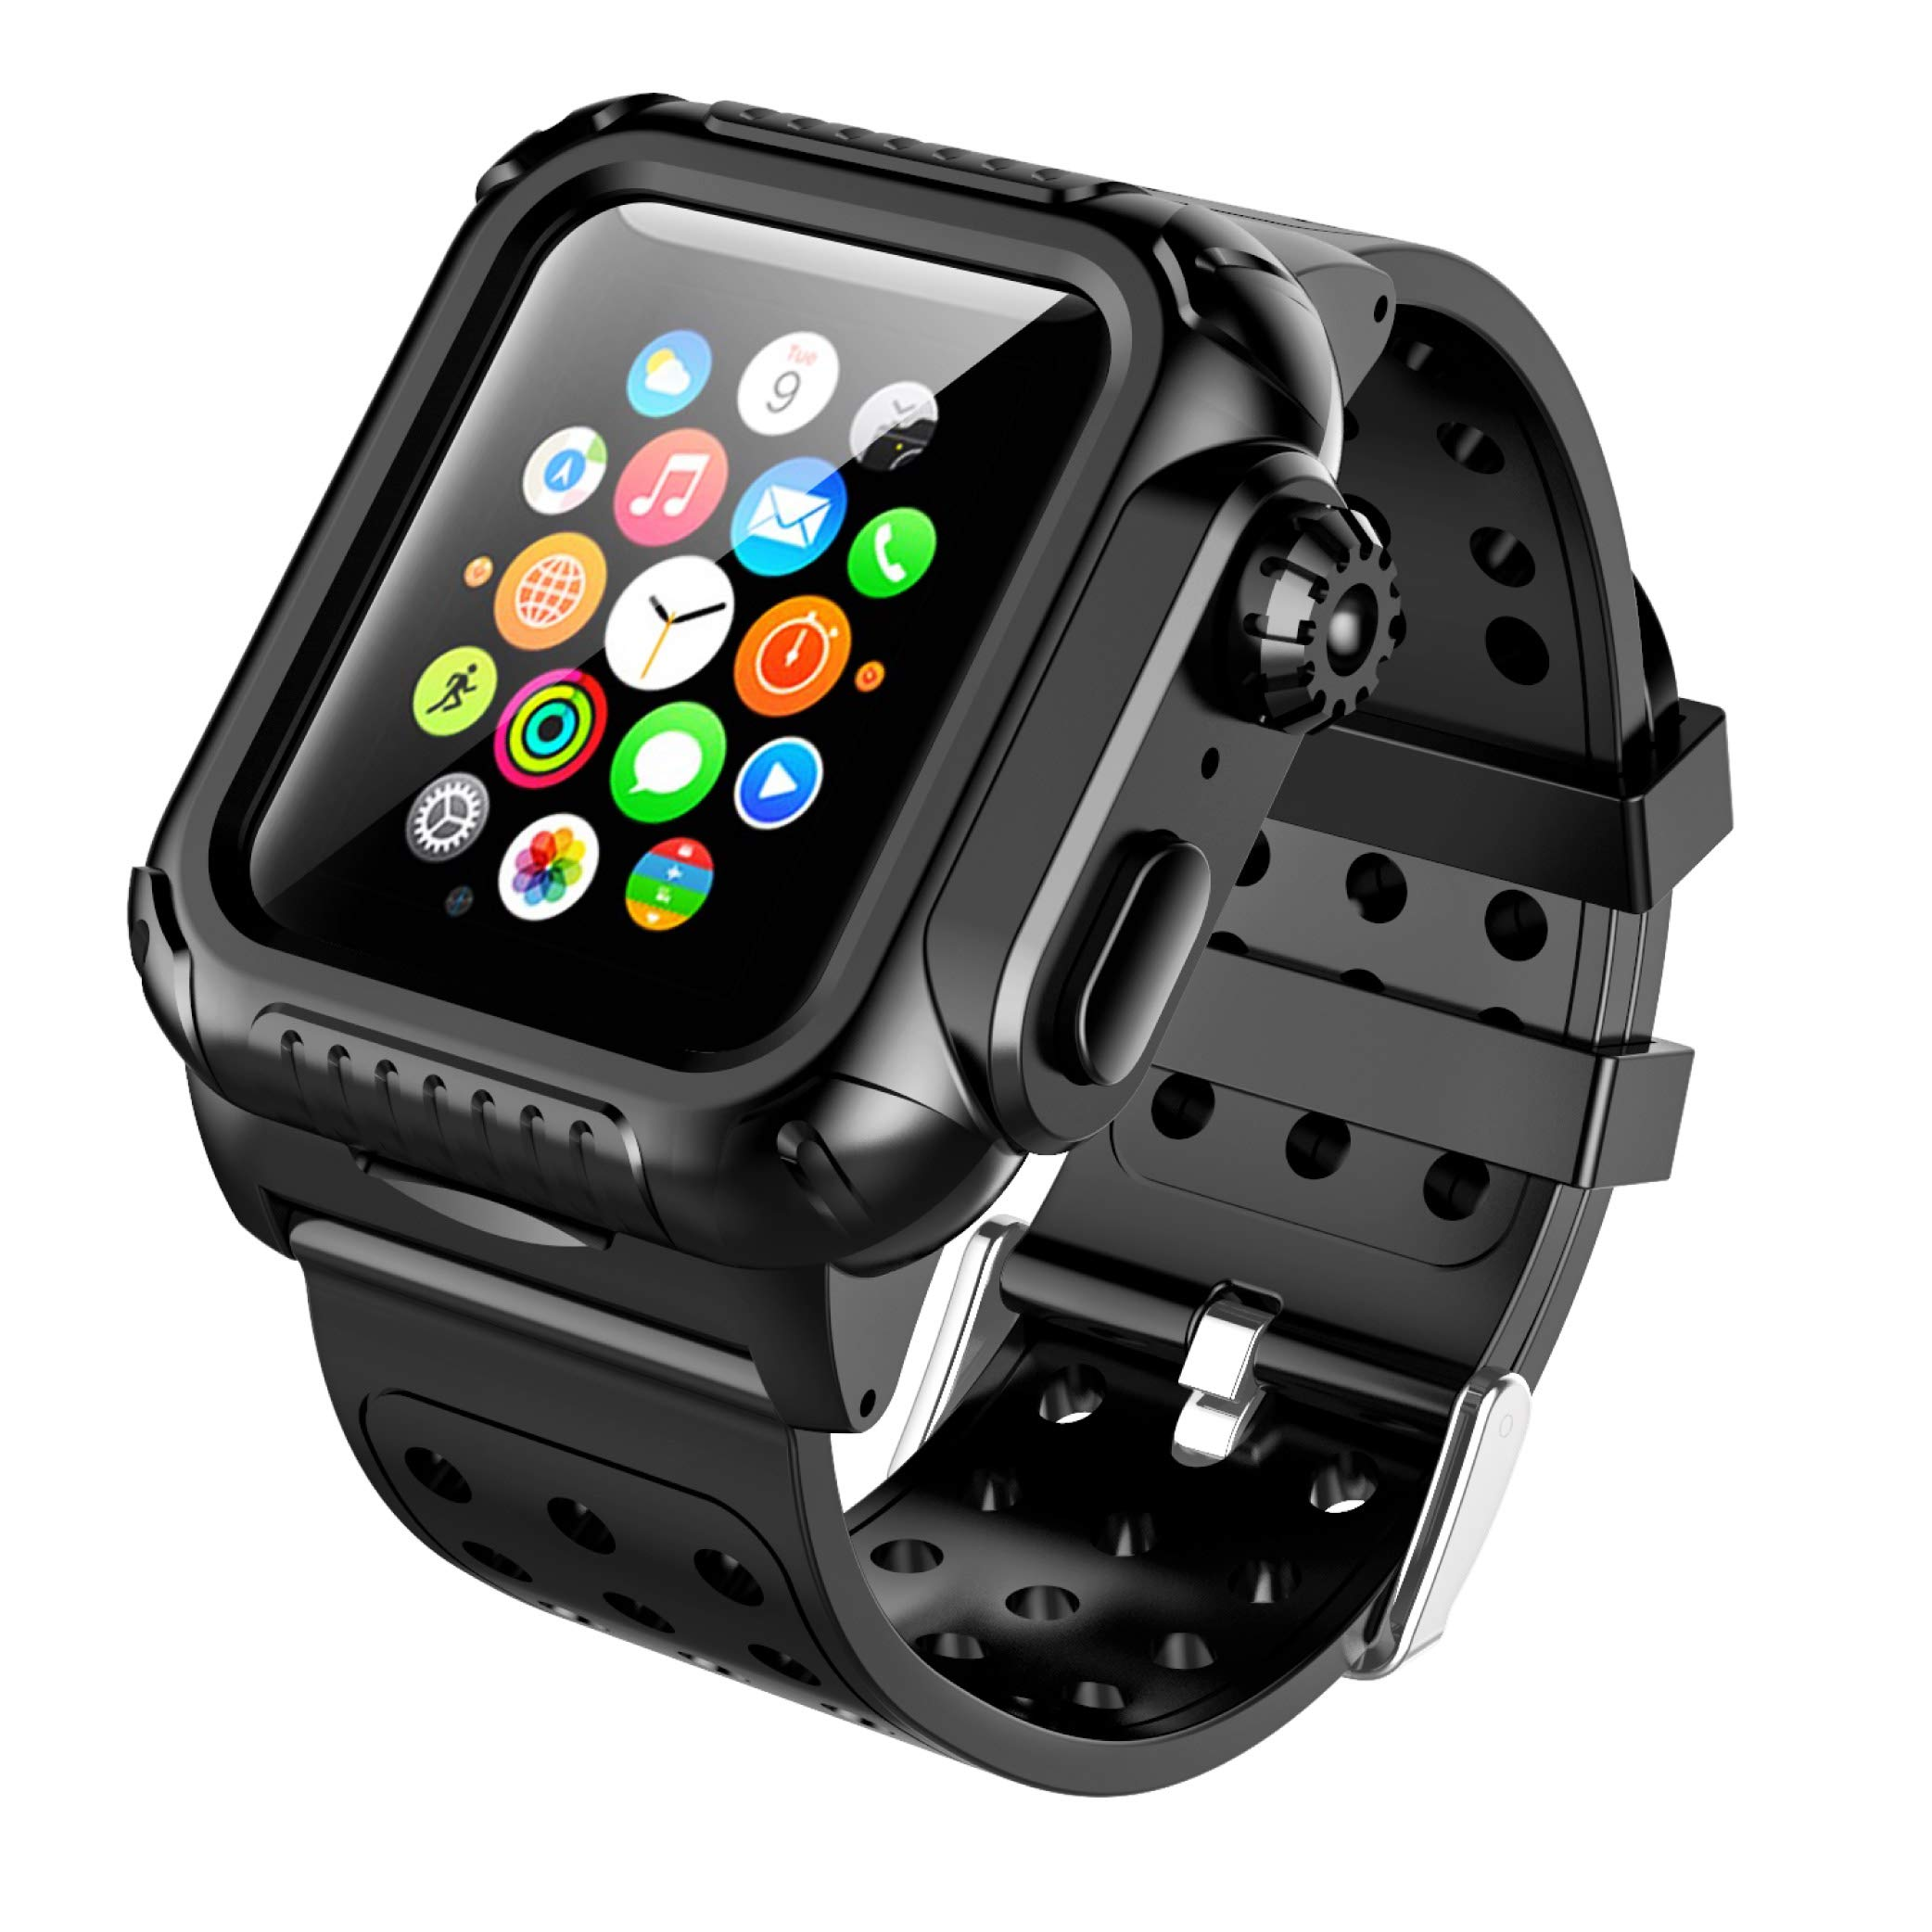 Apple Watch 4 40mm Case Band, SPIDERCASE 360° Rugged Case with Strap Band, Built-in Screen Protector Full Body Cover Case for Apple Watch Series 4 40mm ONLY, Anti-Scratch, Shockproof and More by SPIDERCASE